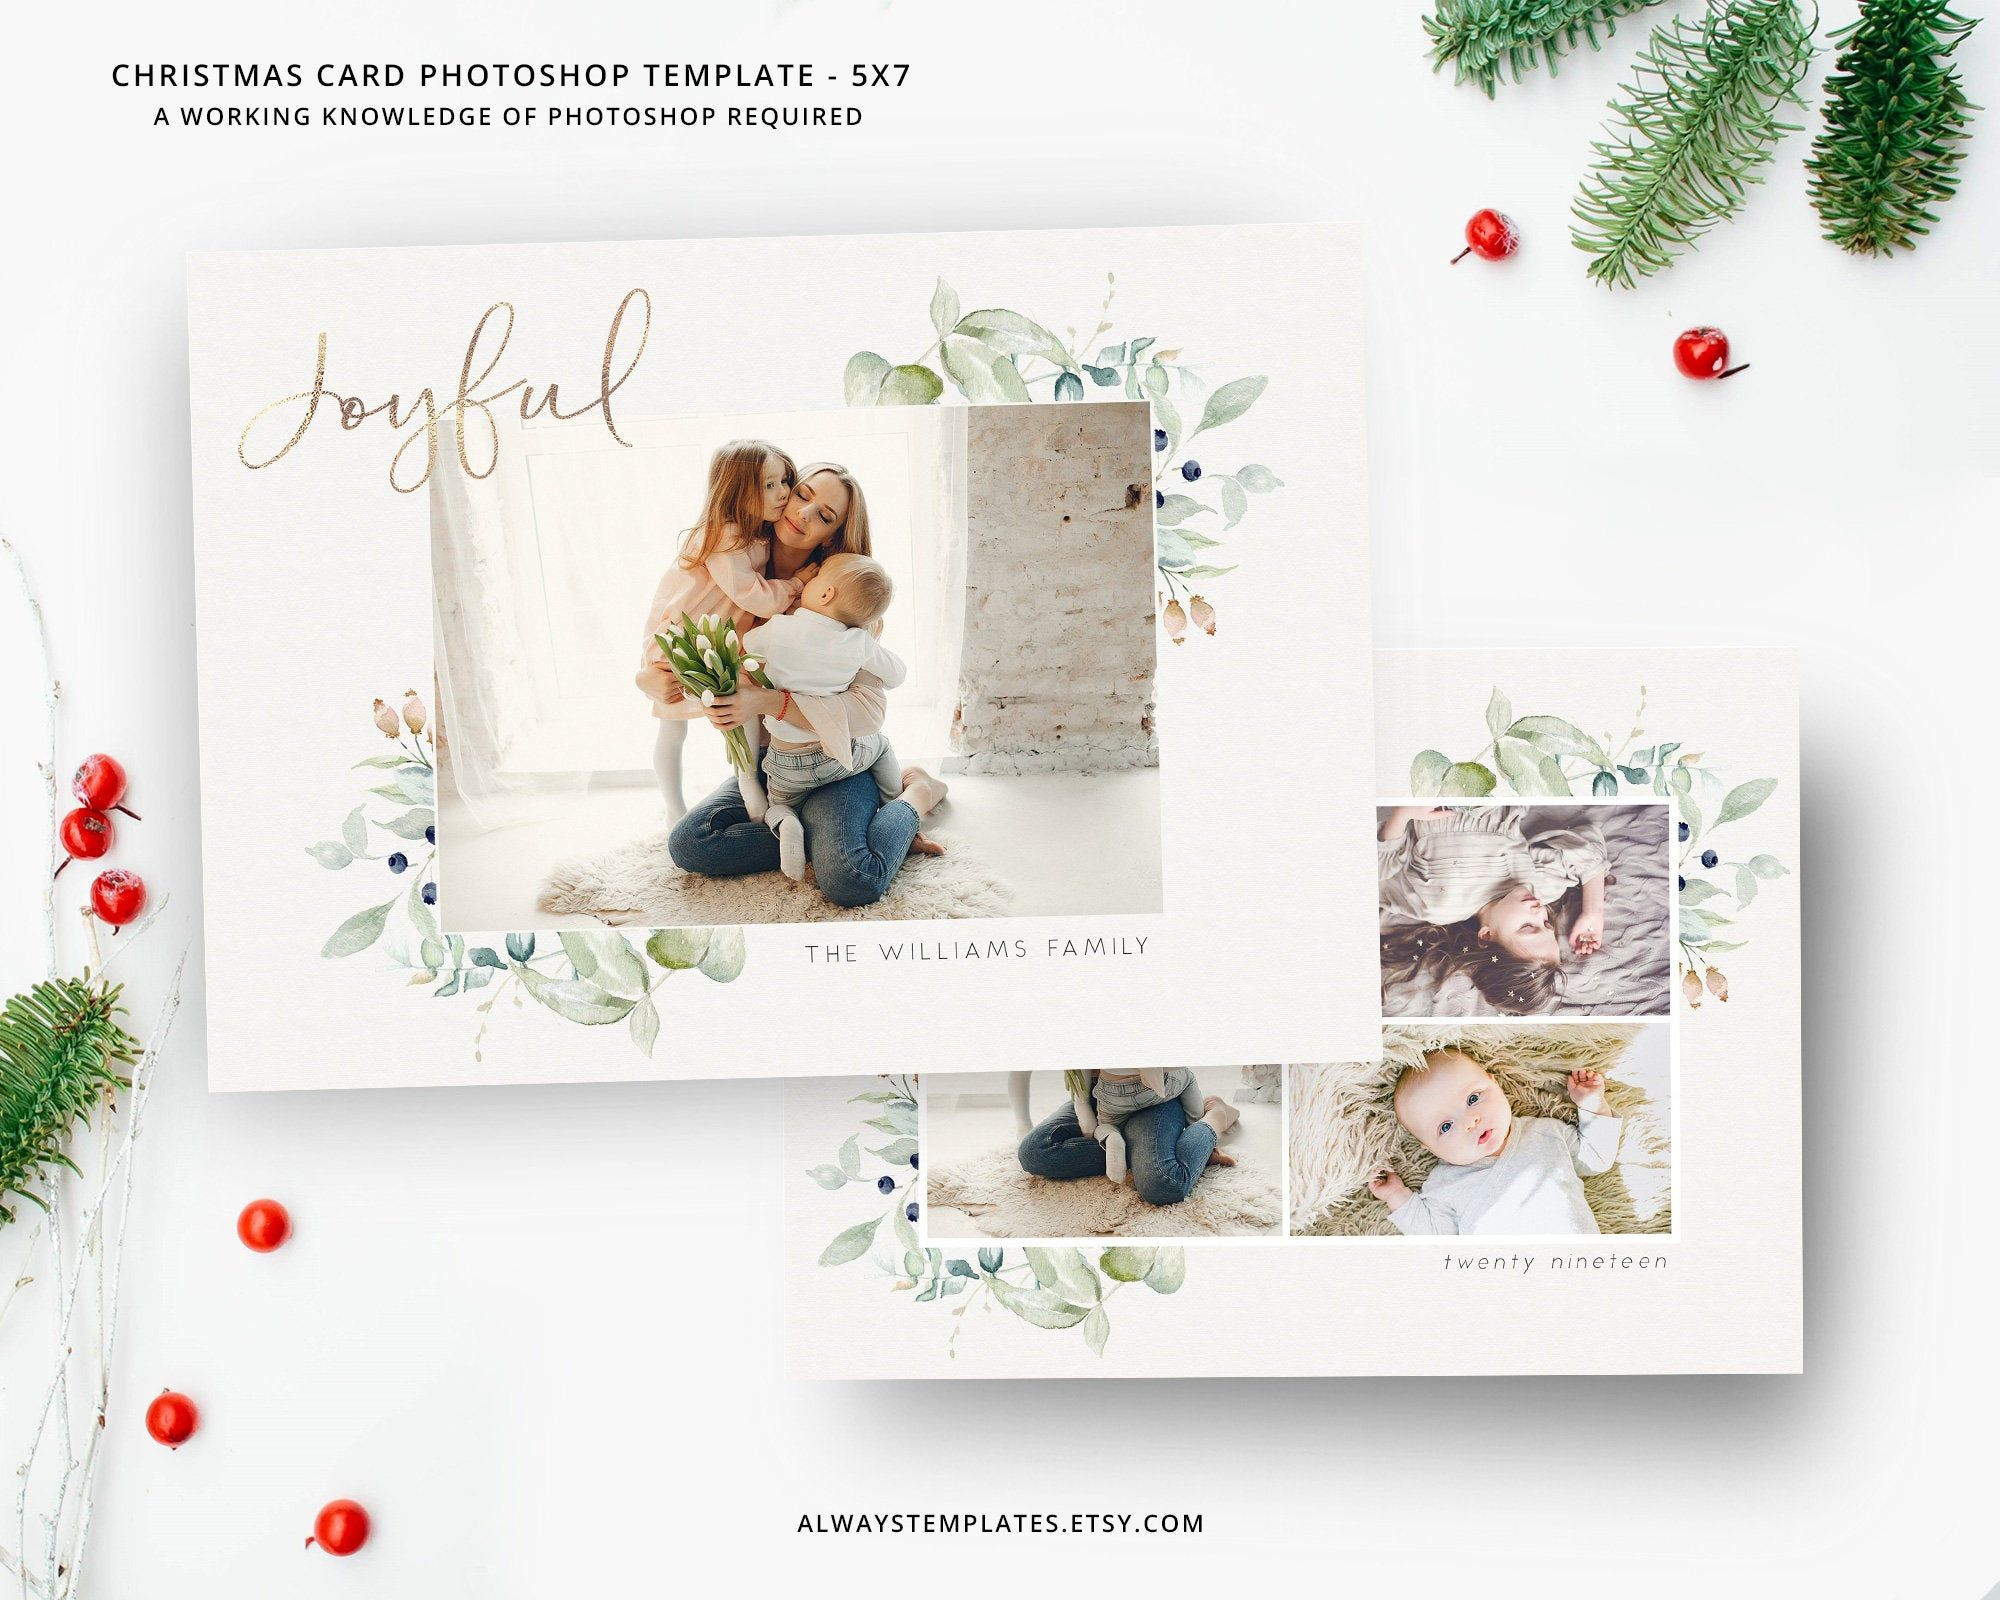 Photo Christmas Card Template Christmas Card Template Etsy Photoshop Christmas Card Template Christmas Photo Card Template Holiday Card Template